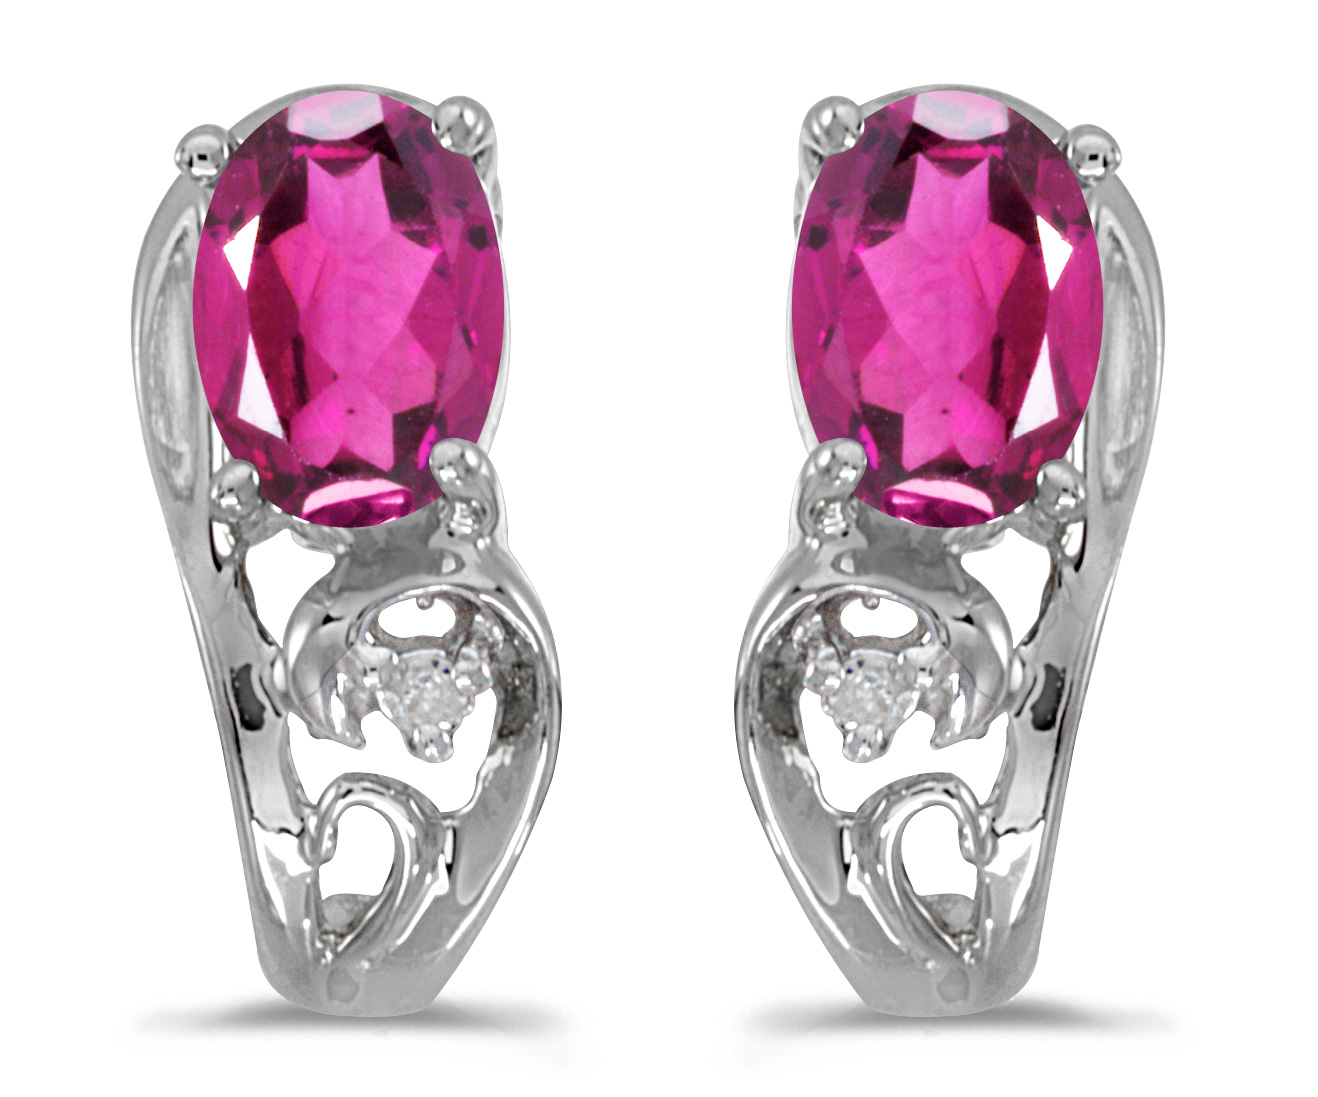 14k White Gold Oval Pink Topaz And Diamond Earrings by